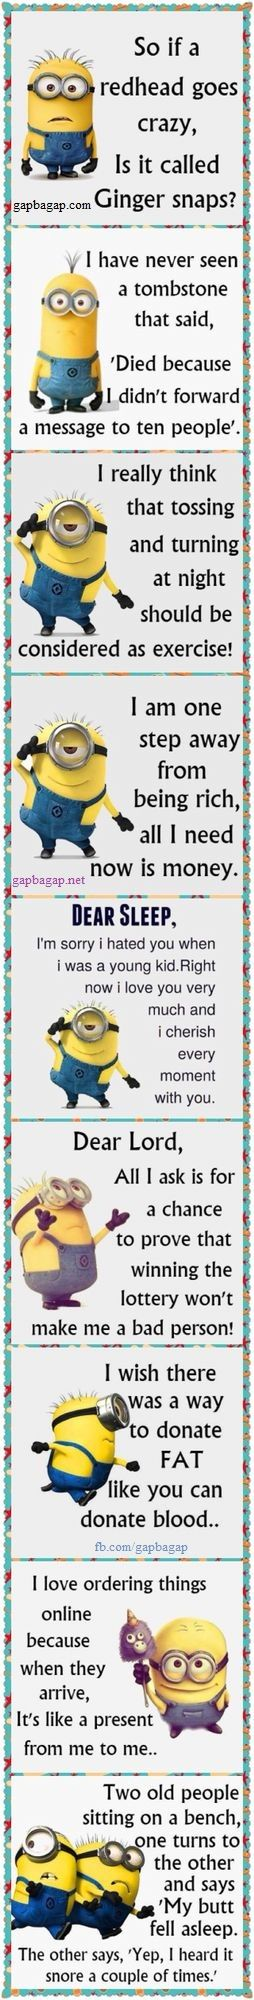 Best 25+ Minion meme ideas only on Pinterest  Minions funny quotes, Comeback...